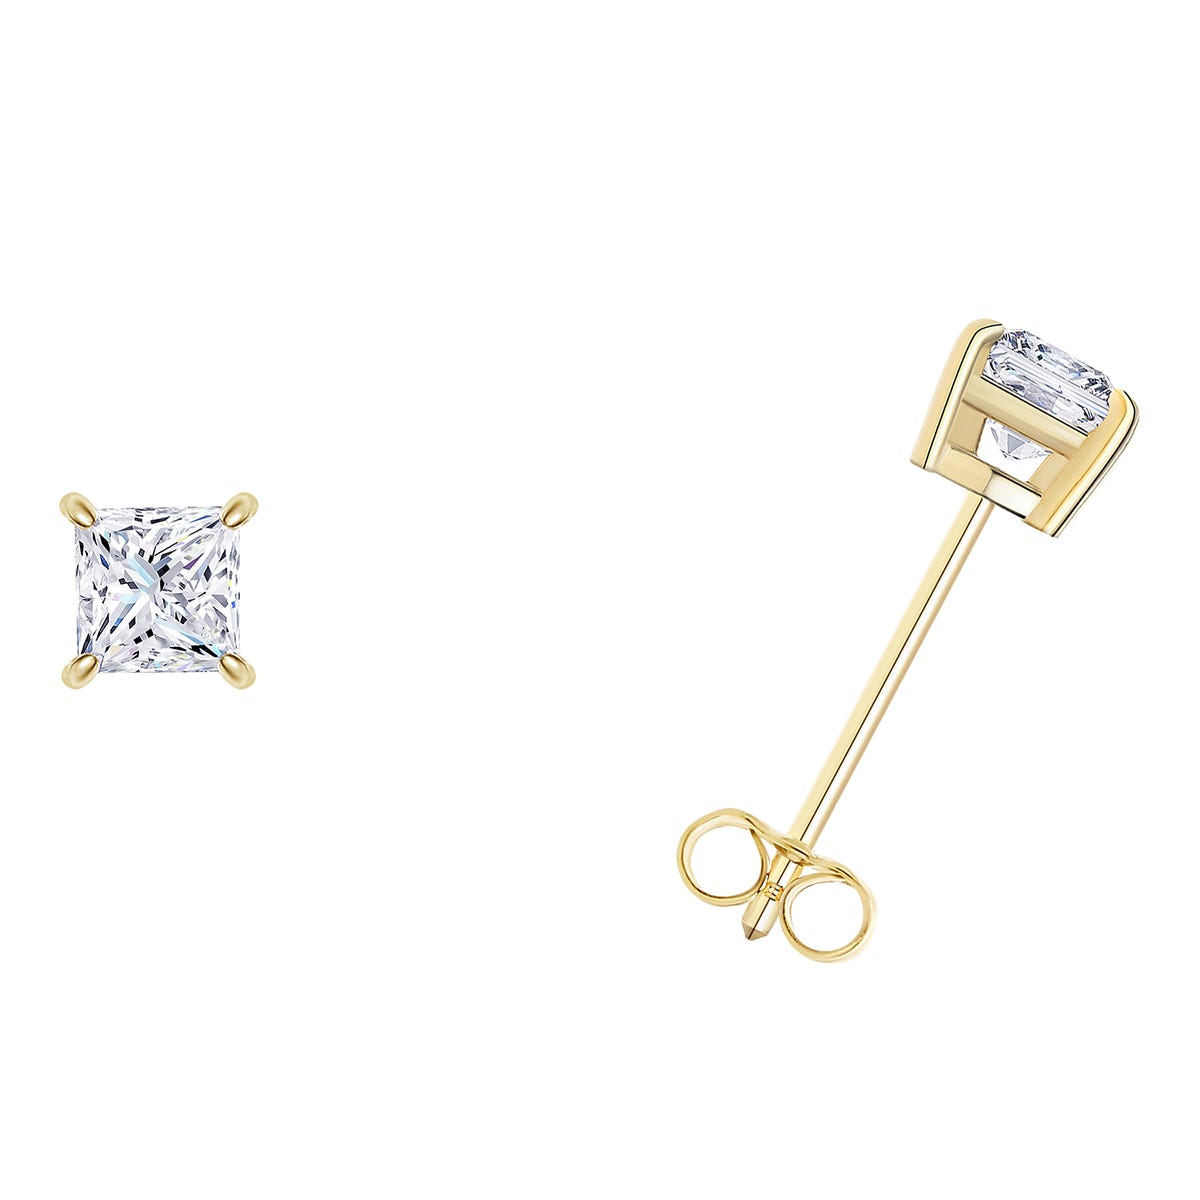 1/5 CTTW Princess Cut Diamond Solitaire Stud Earrings in 14K Yellow Gold 4-Prong IGI Certified I2